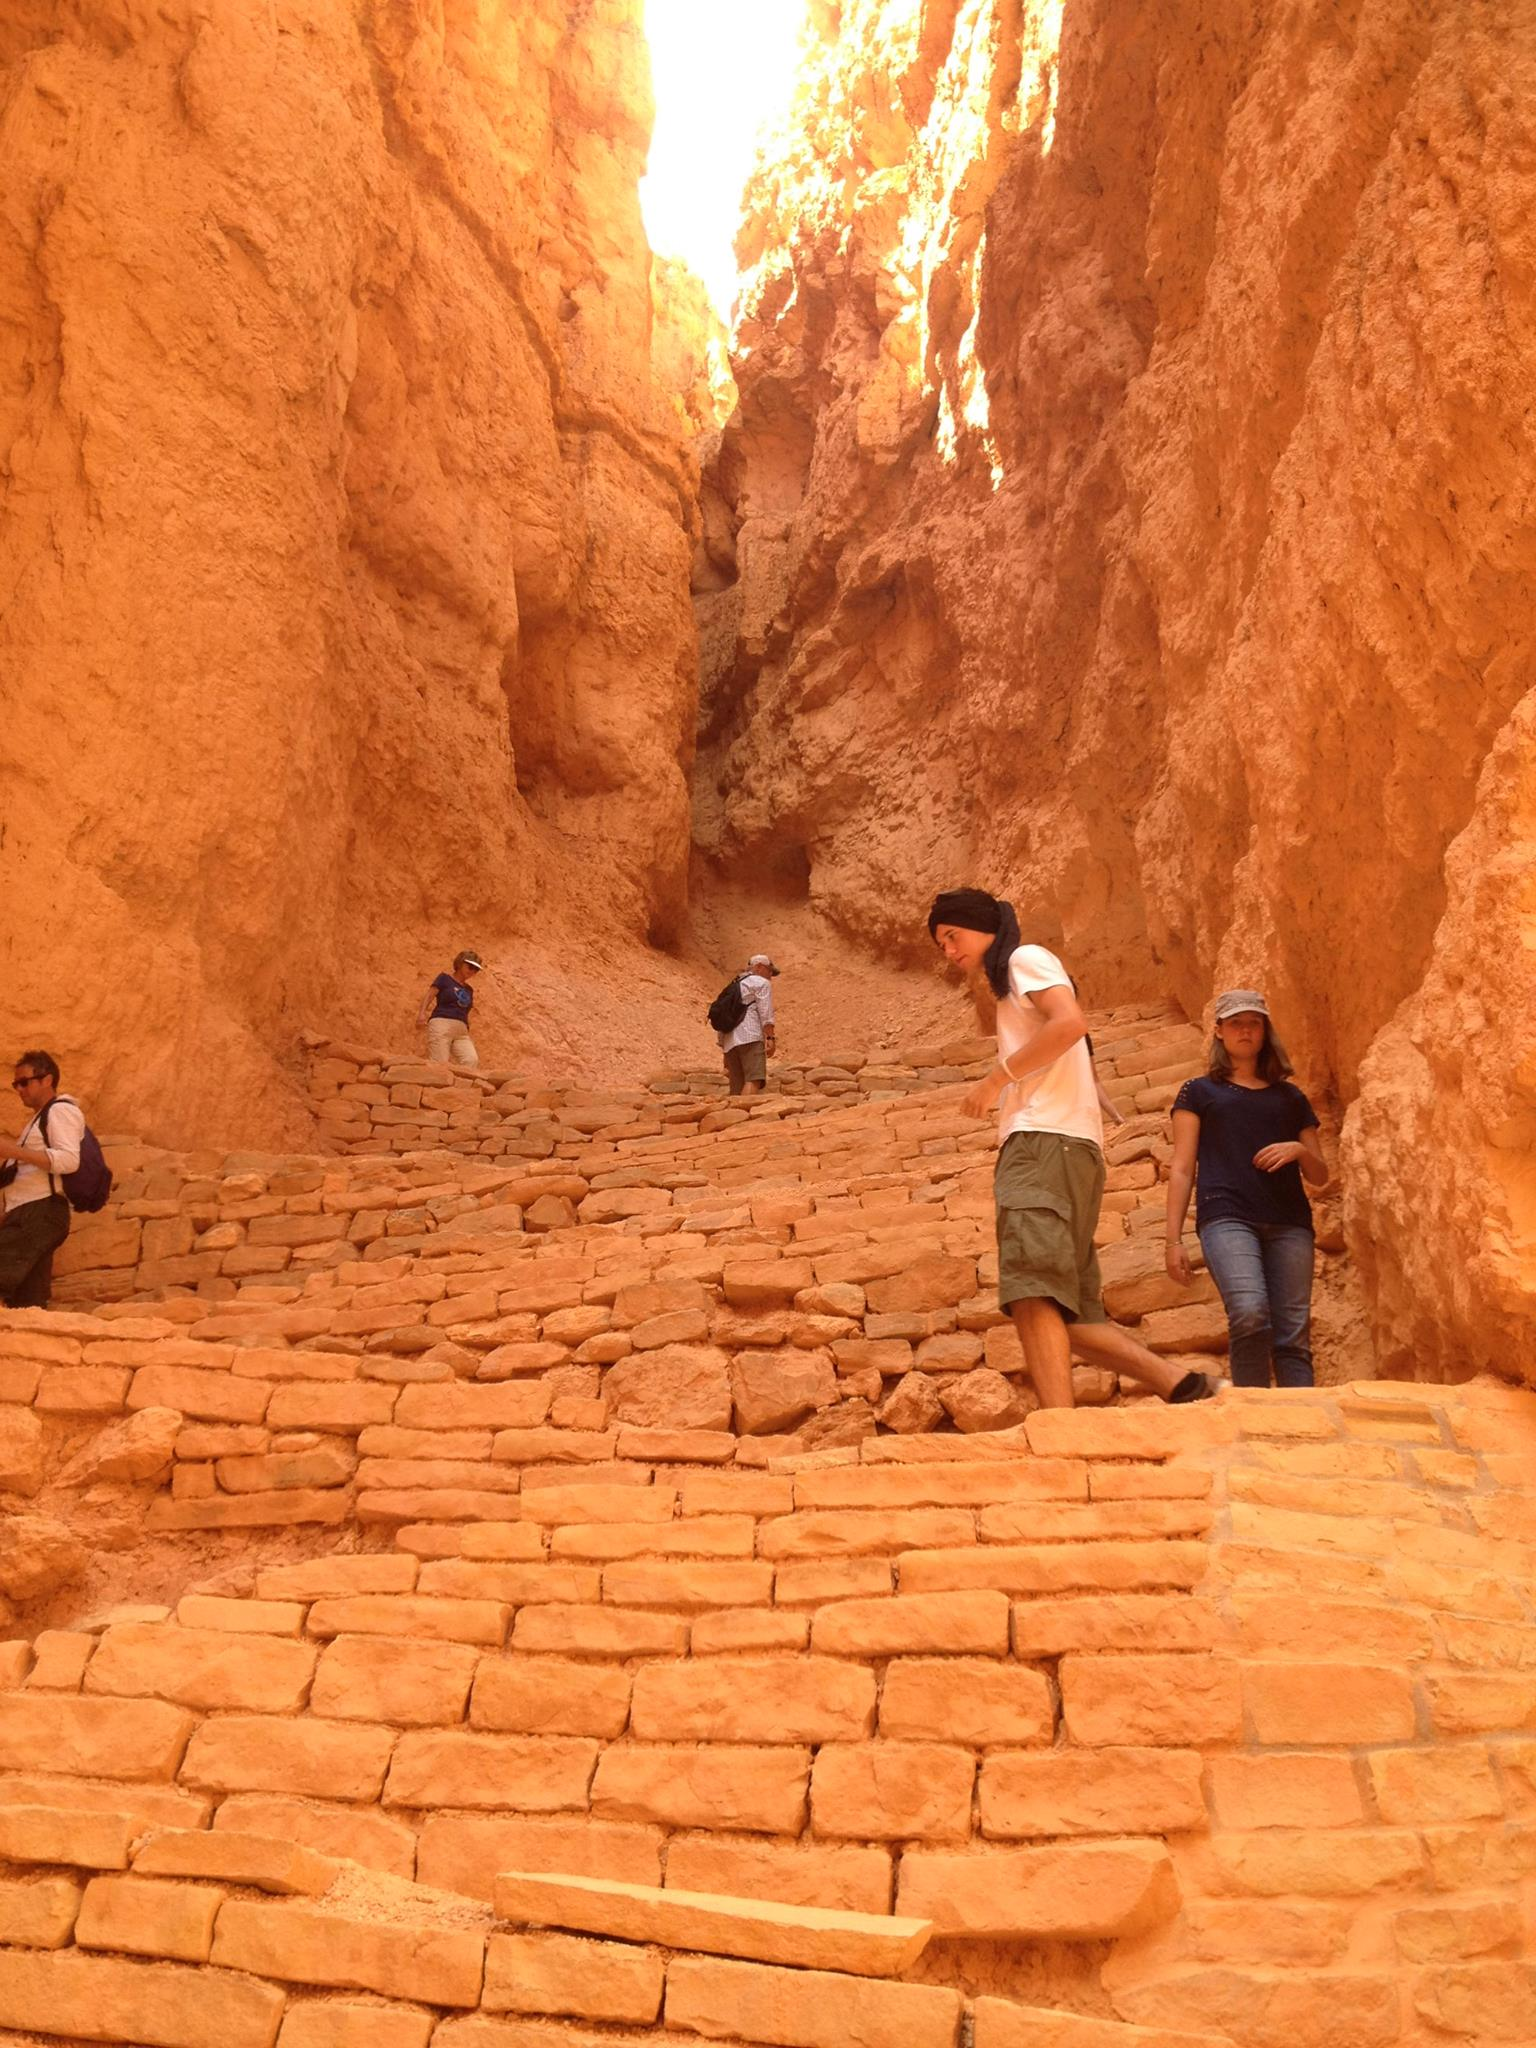 Descending Down the Stairs of the Navajo Loop Trail | Bryce Canyon